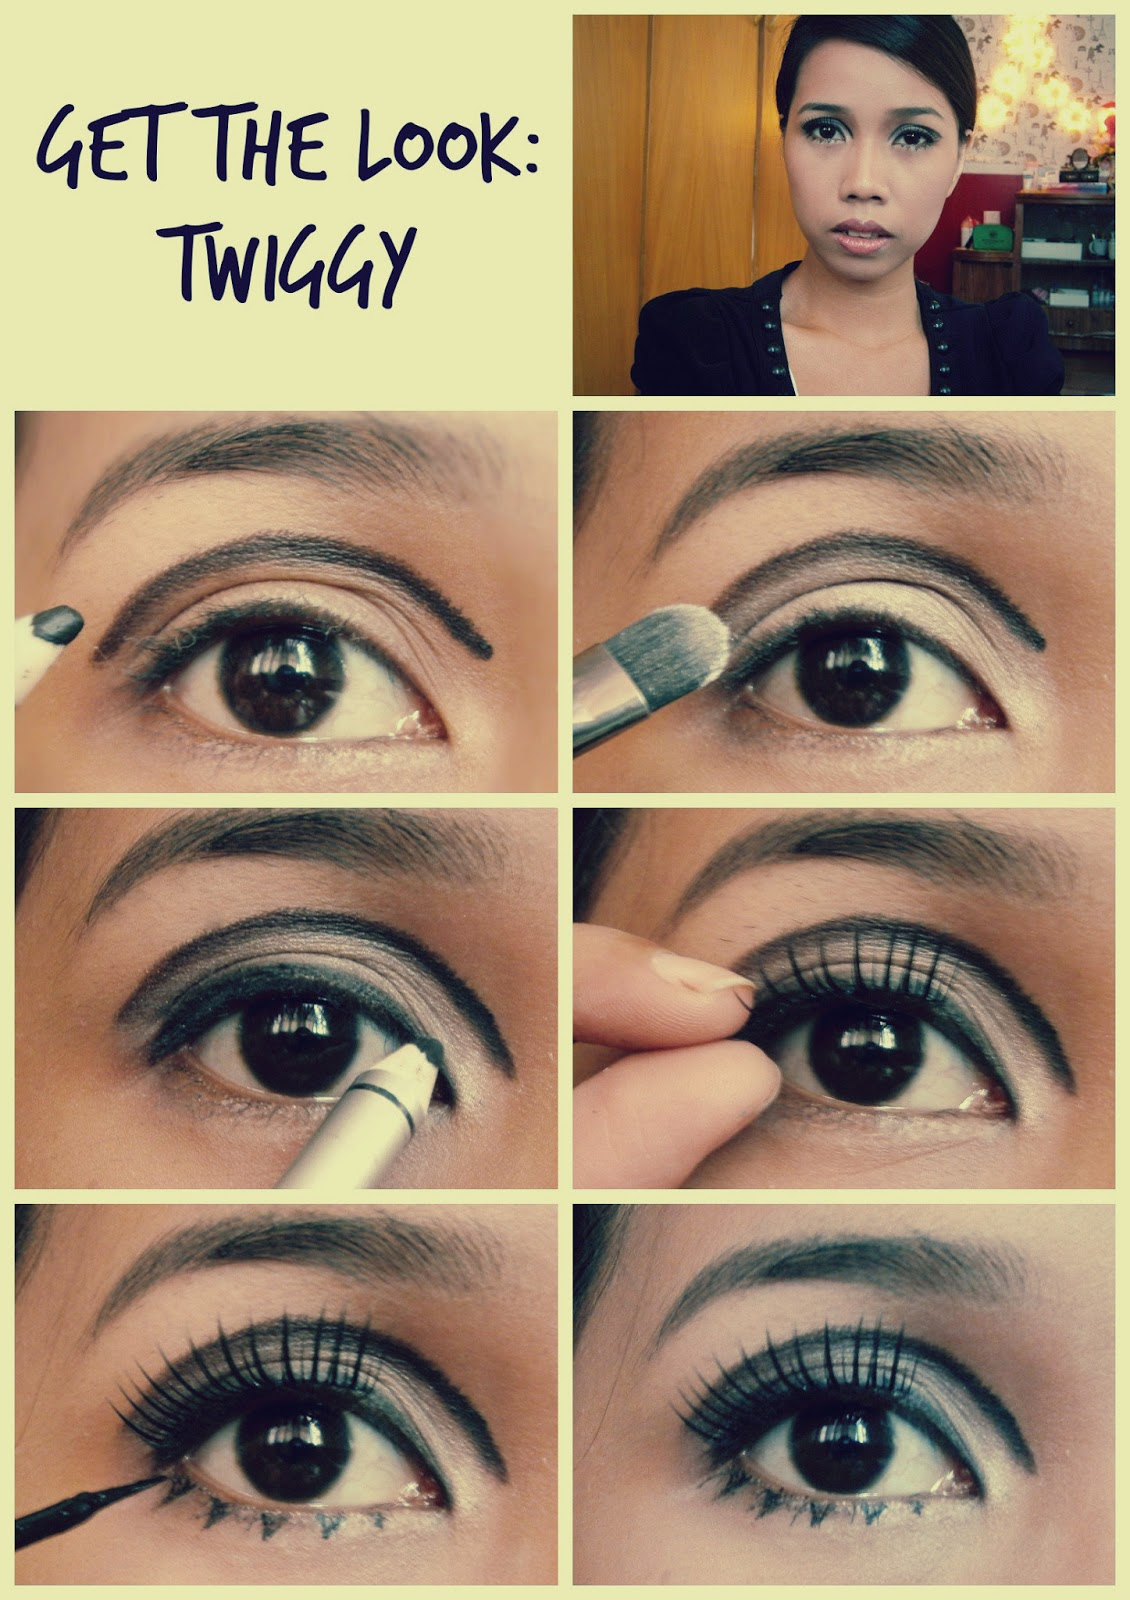 Get The Best Makeup Looks Inspired By Celebs: Mineeh11: Get The Look: Twiggy